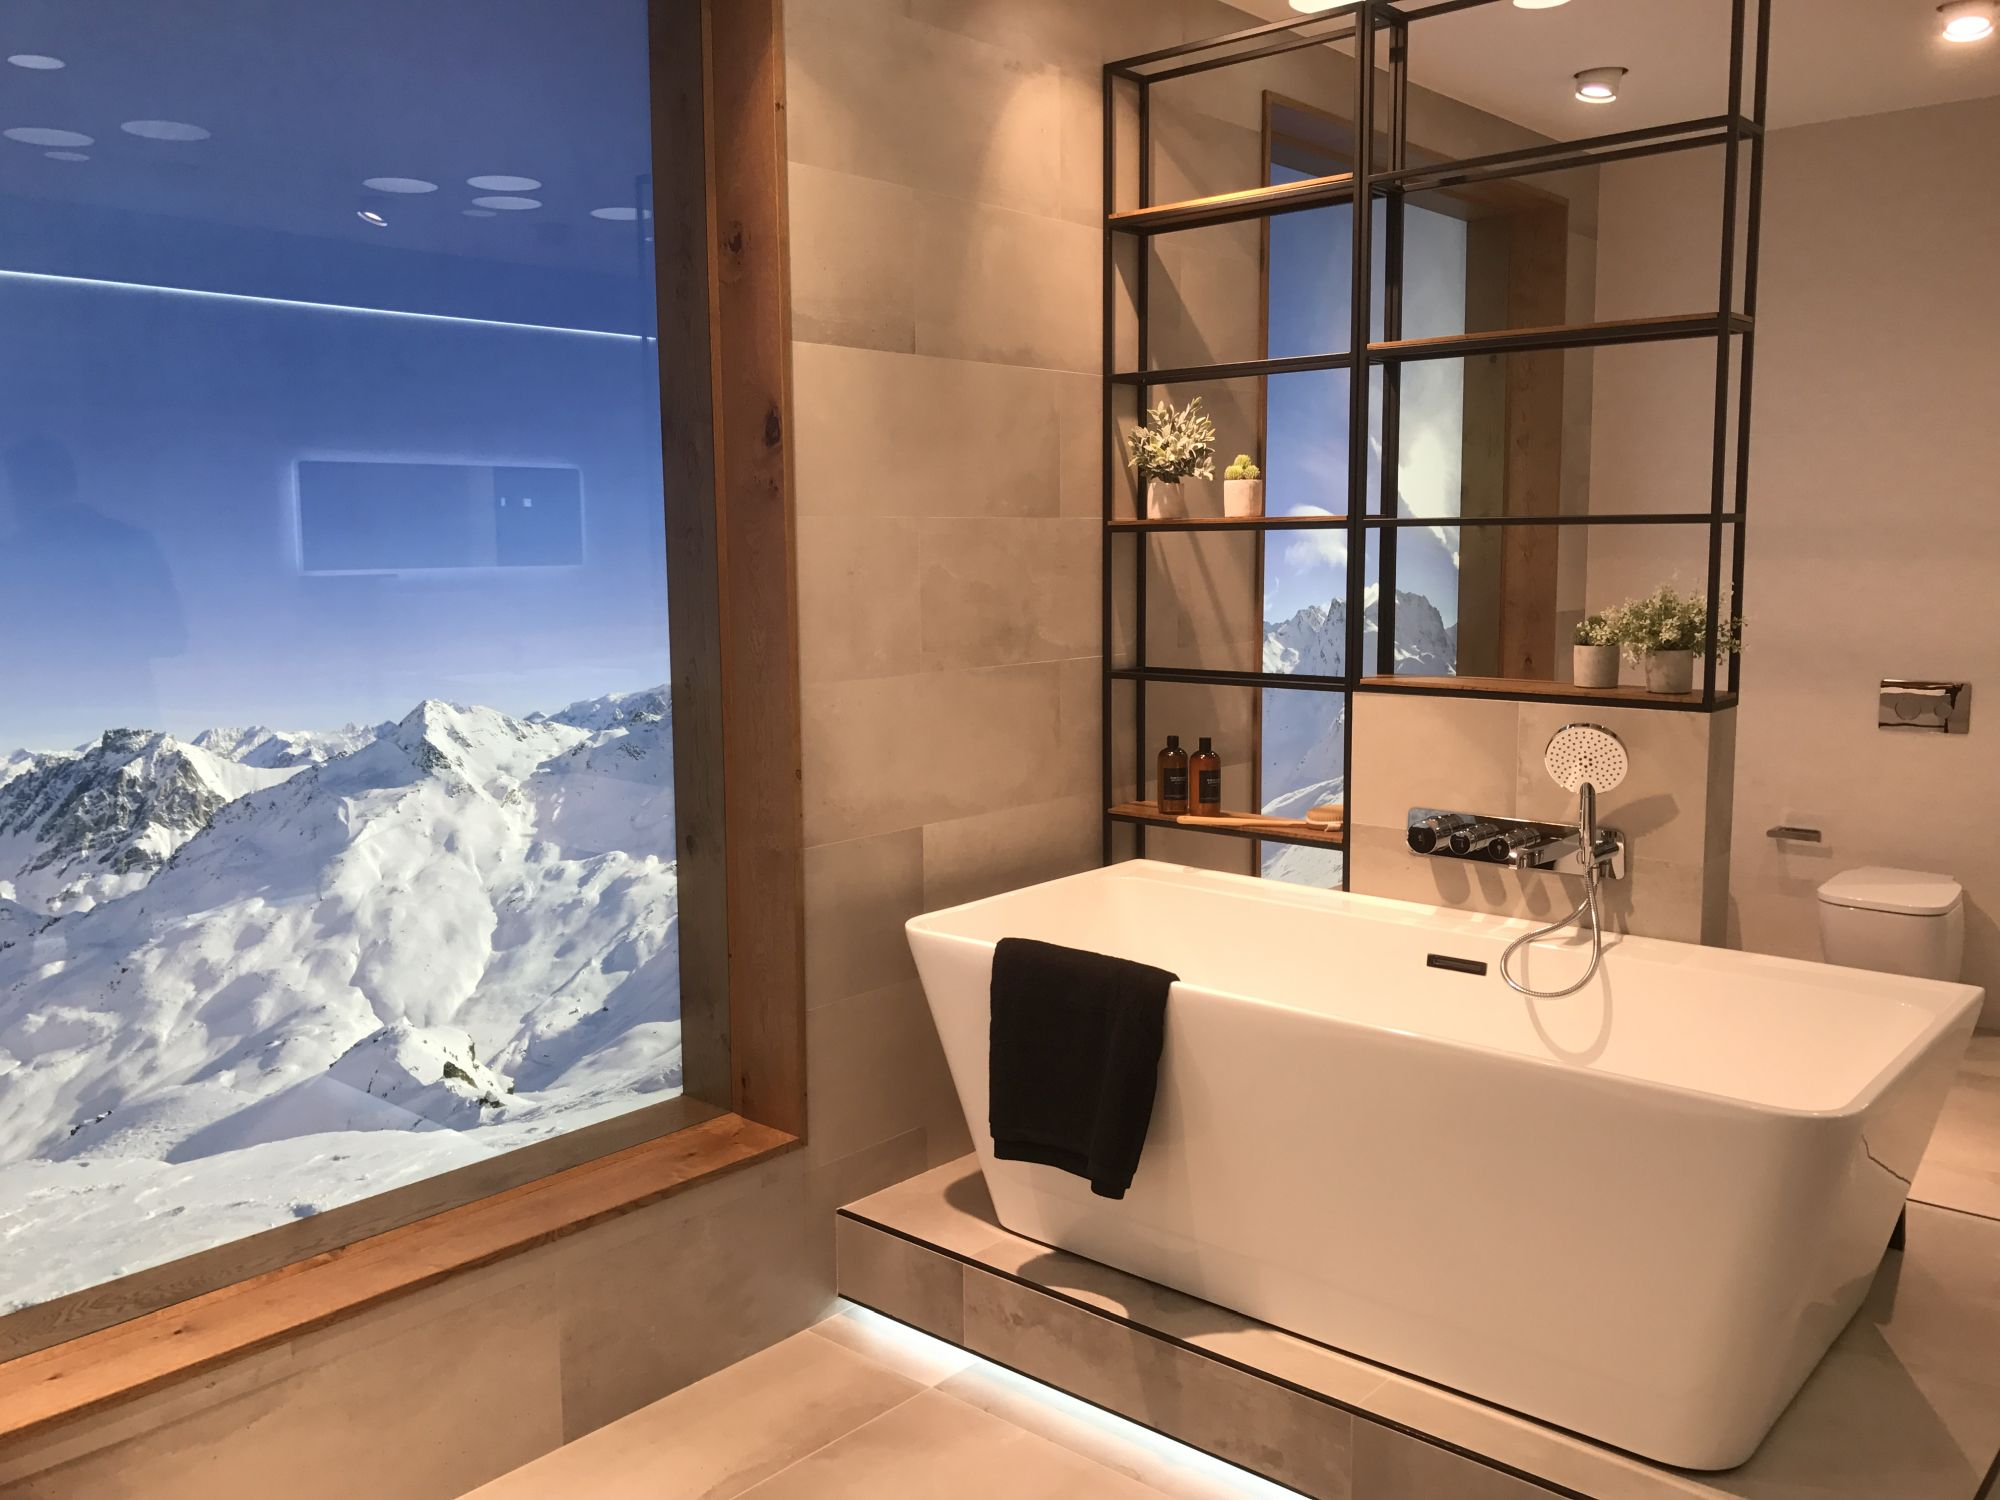 Lounge-bath-collection-by-Simone-Micheli-for-Porcelanosa